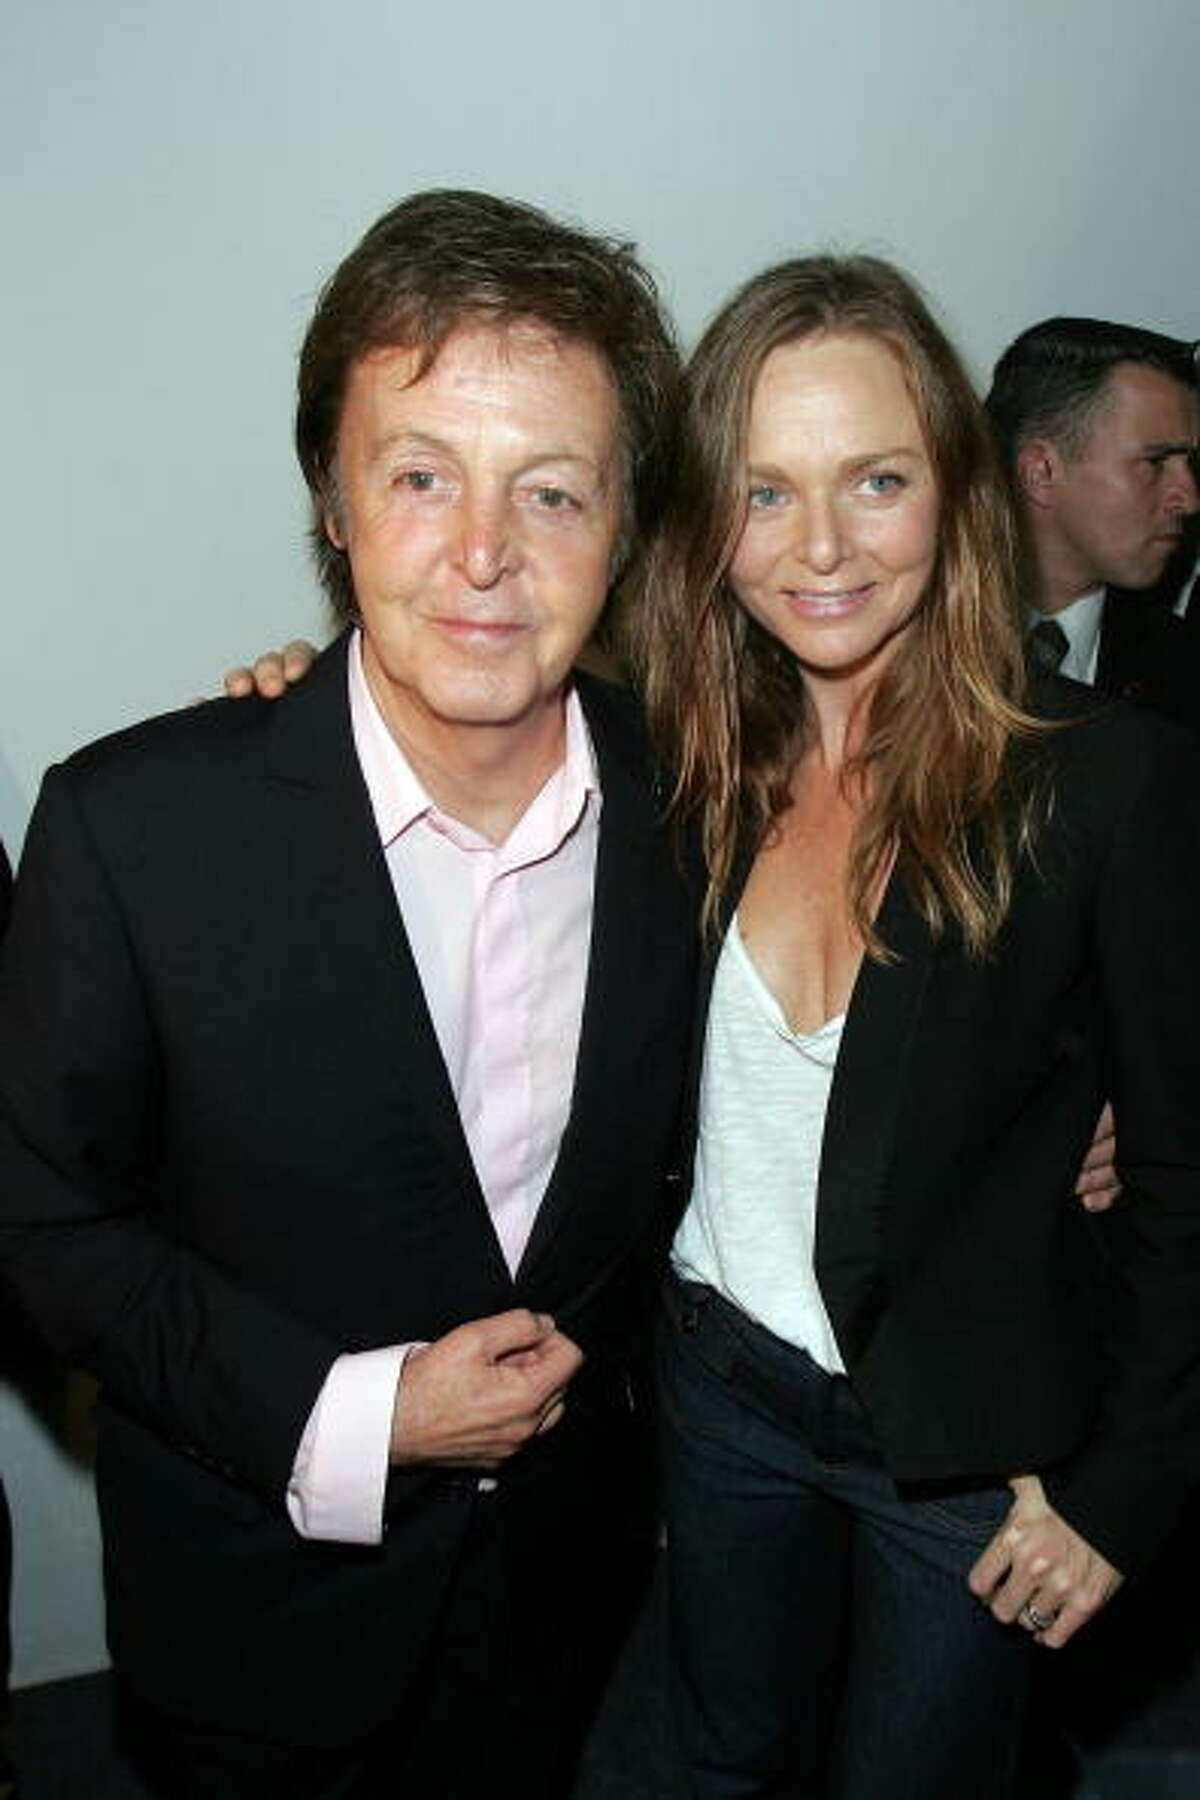 2009: Paul McCartney with daughter Stella McCartney  in Paris, France.